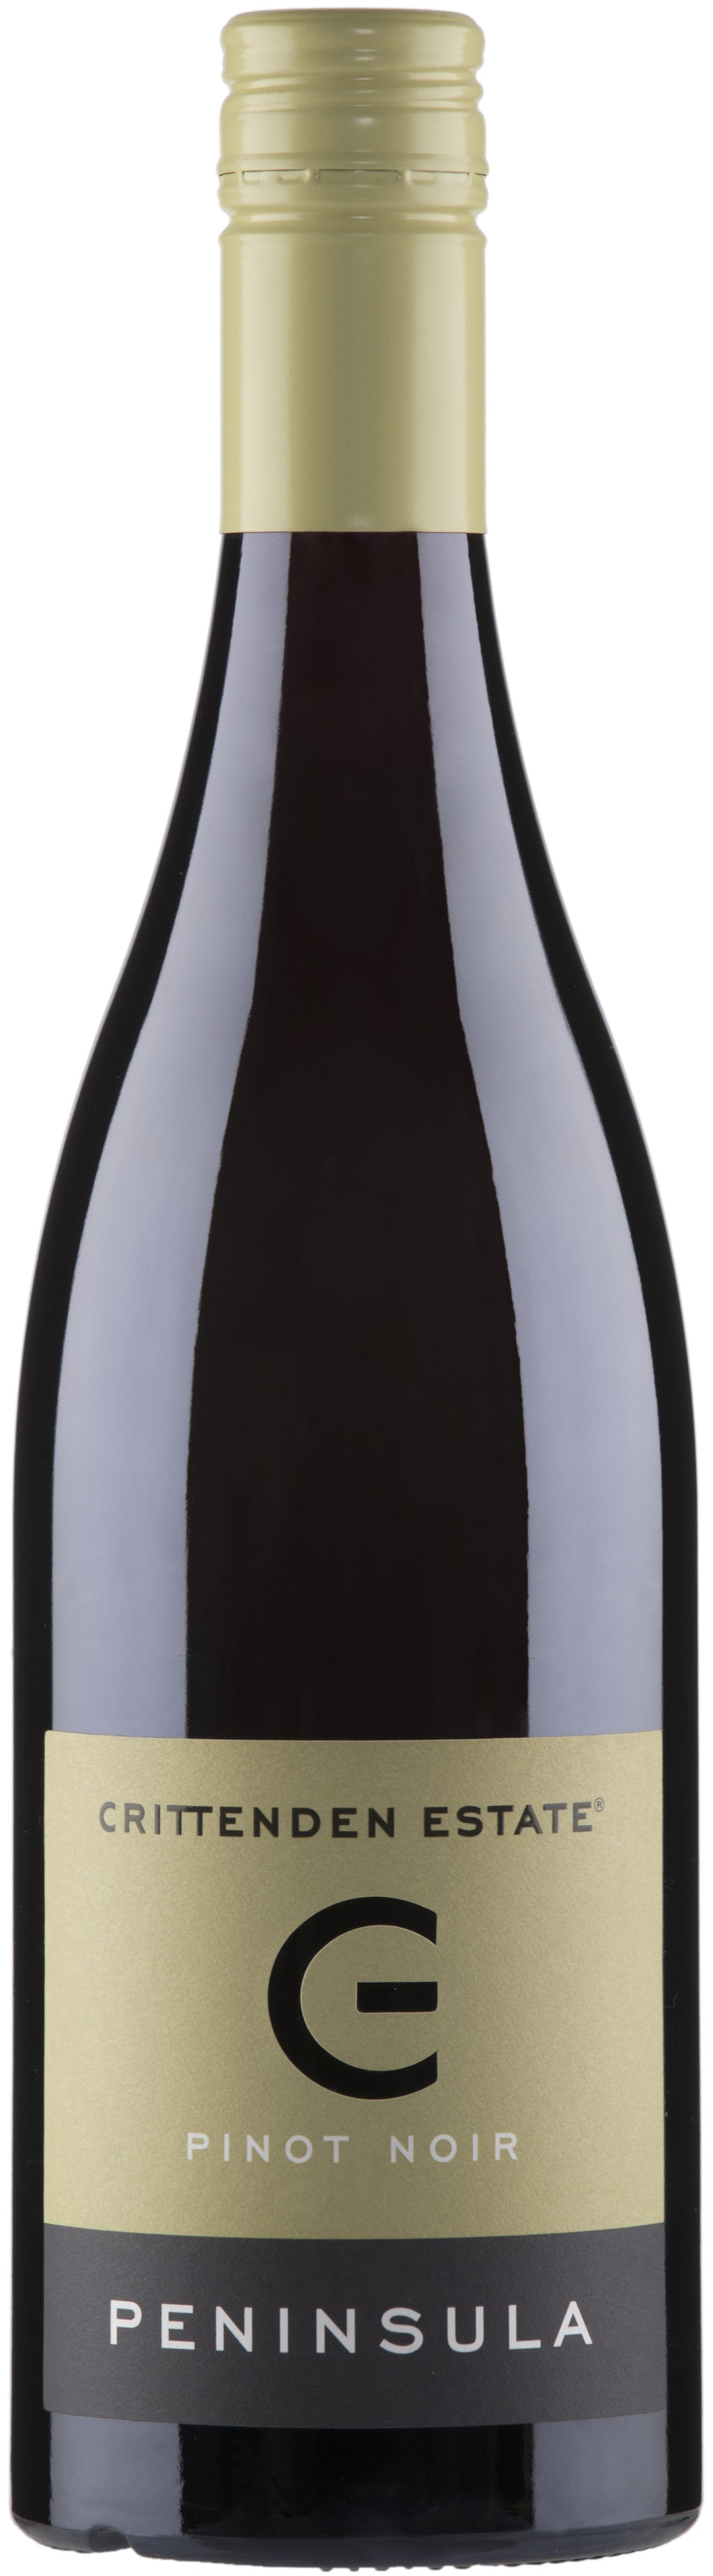 Crittenden Estate Peninsula Pinot Noir 2016 - Network Wines